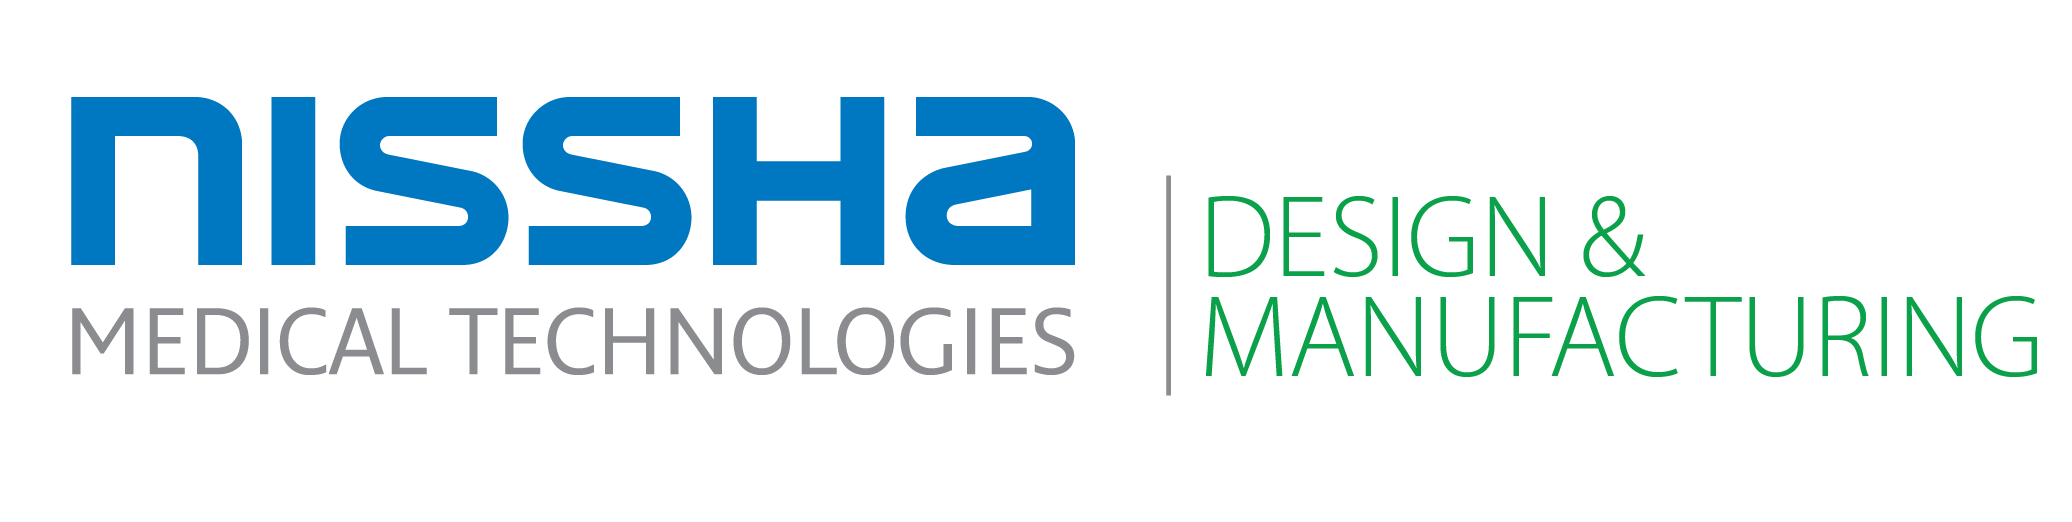 Nissha Medical Technologies | Design & Manufacturing